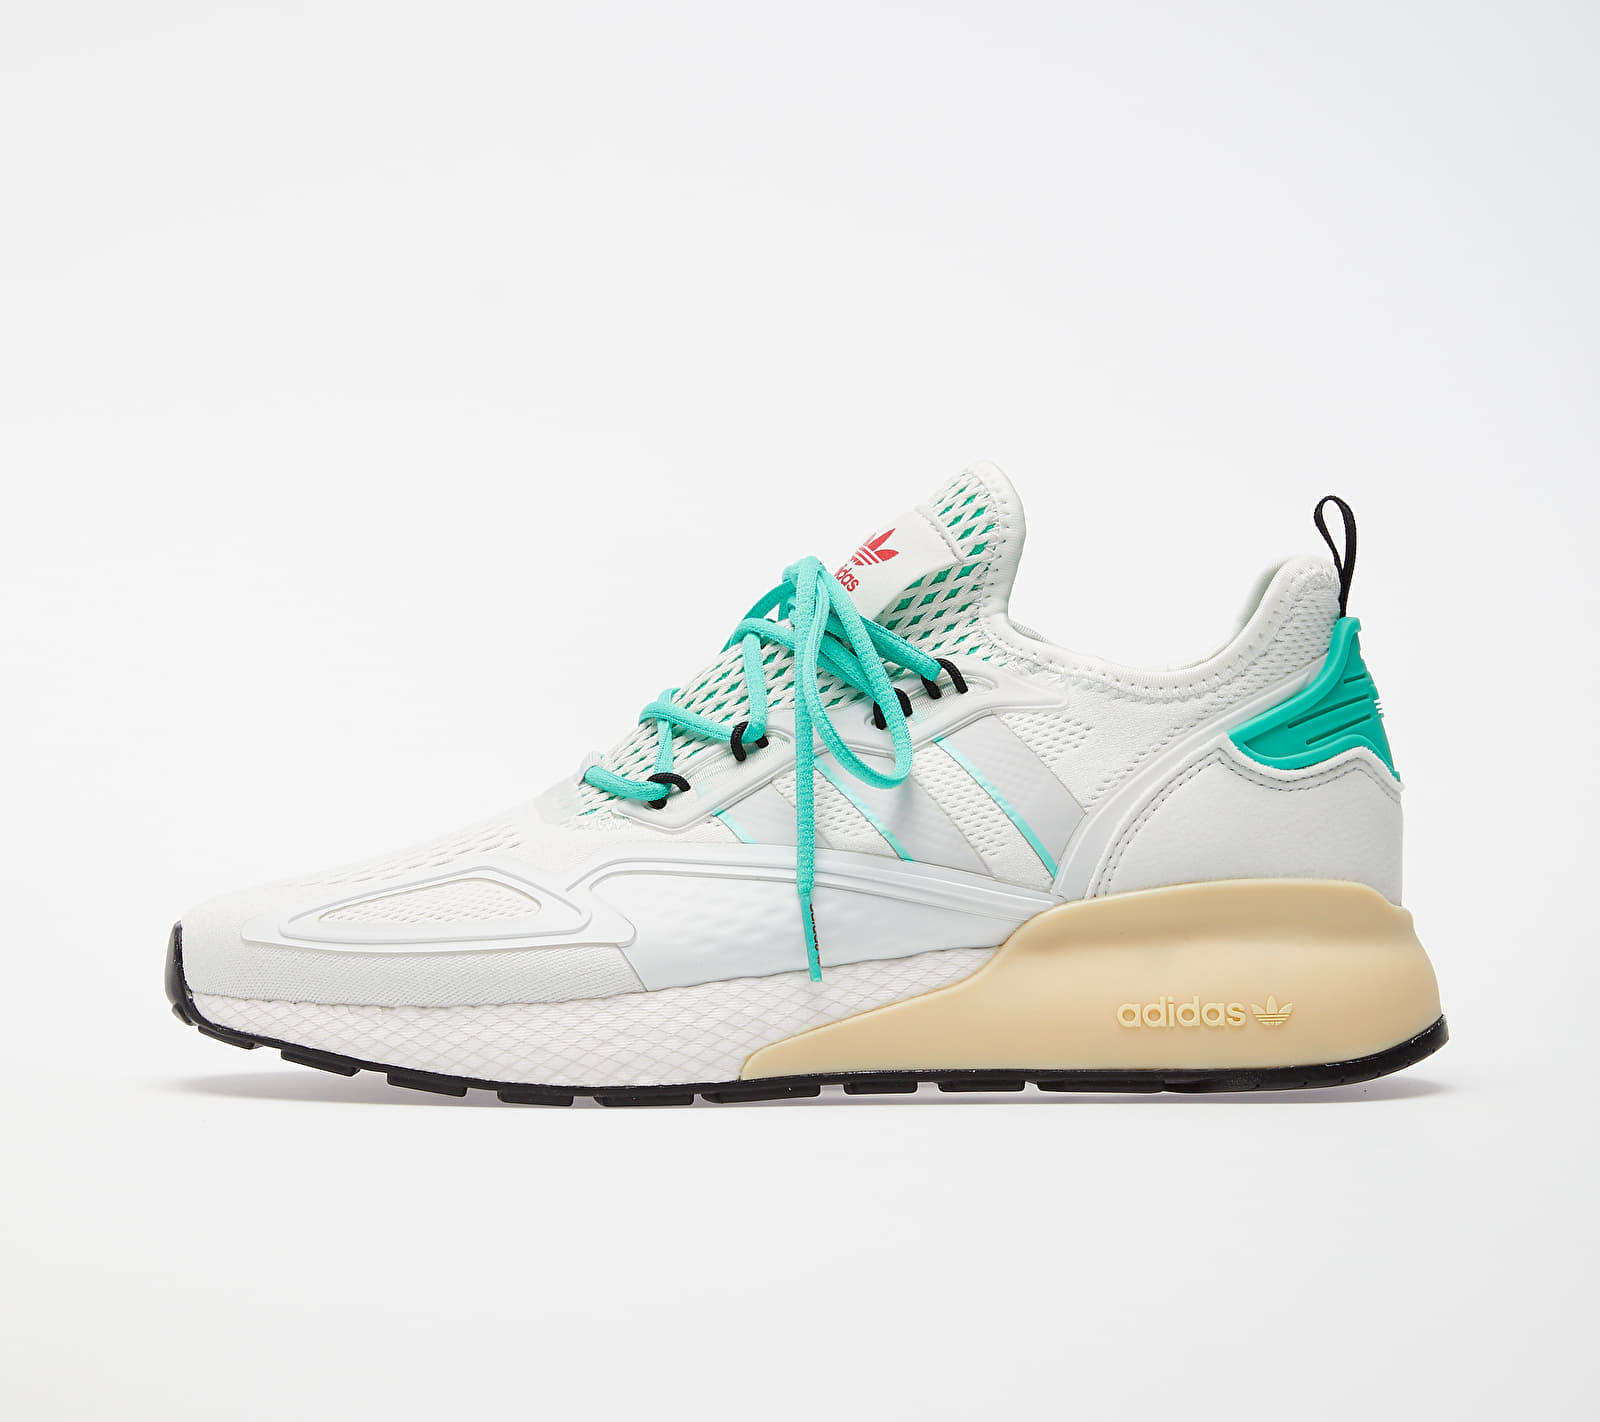 adidas ZX 2K BOOST Crystal White/ Grey One/ Hi-Res Green FX4172